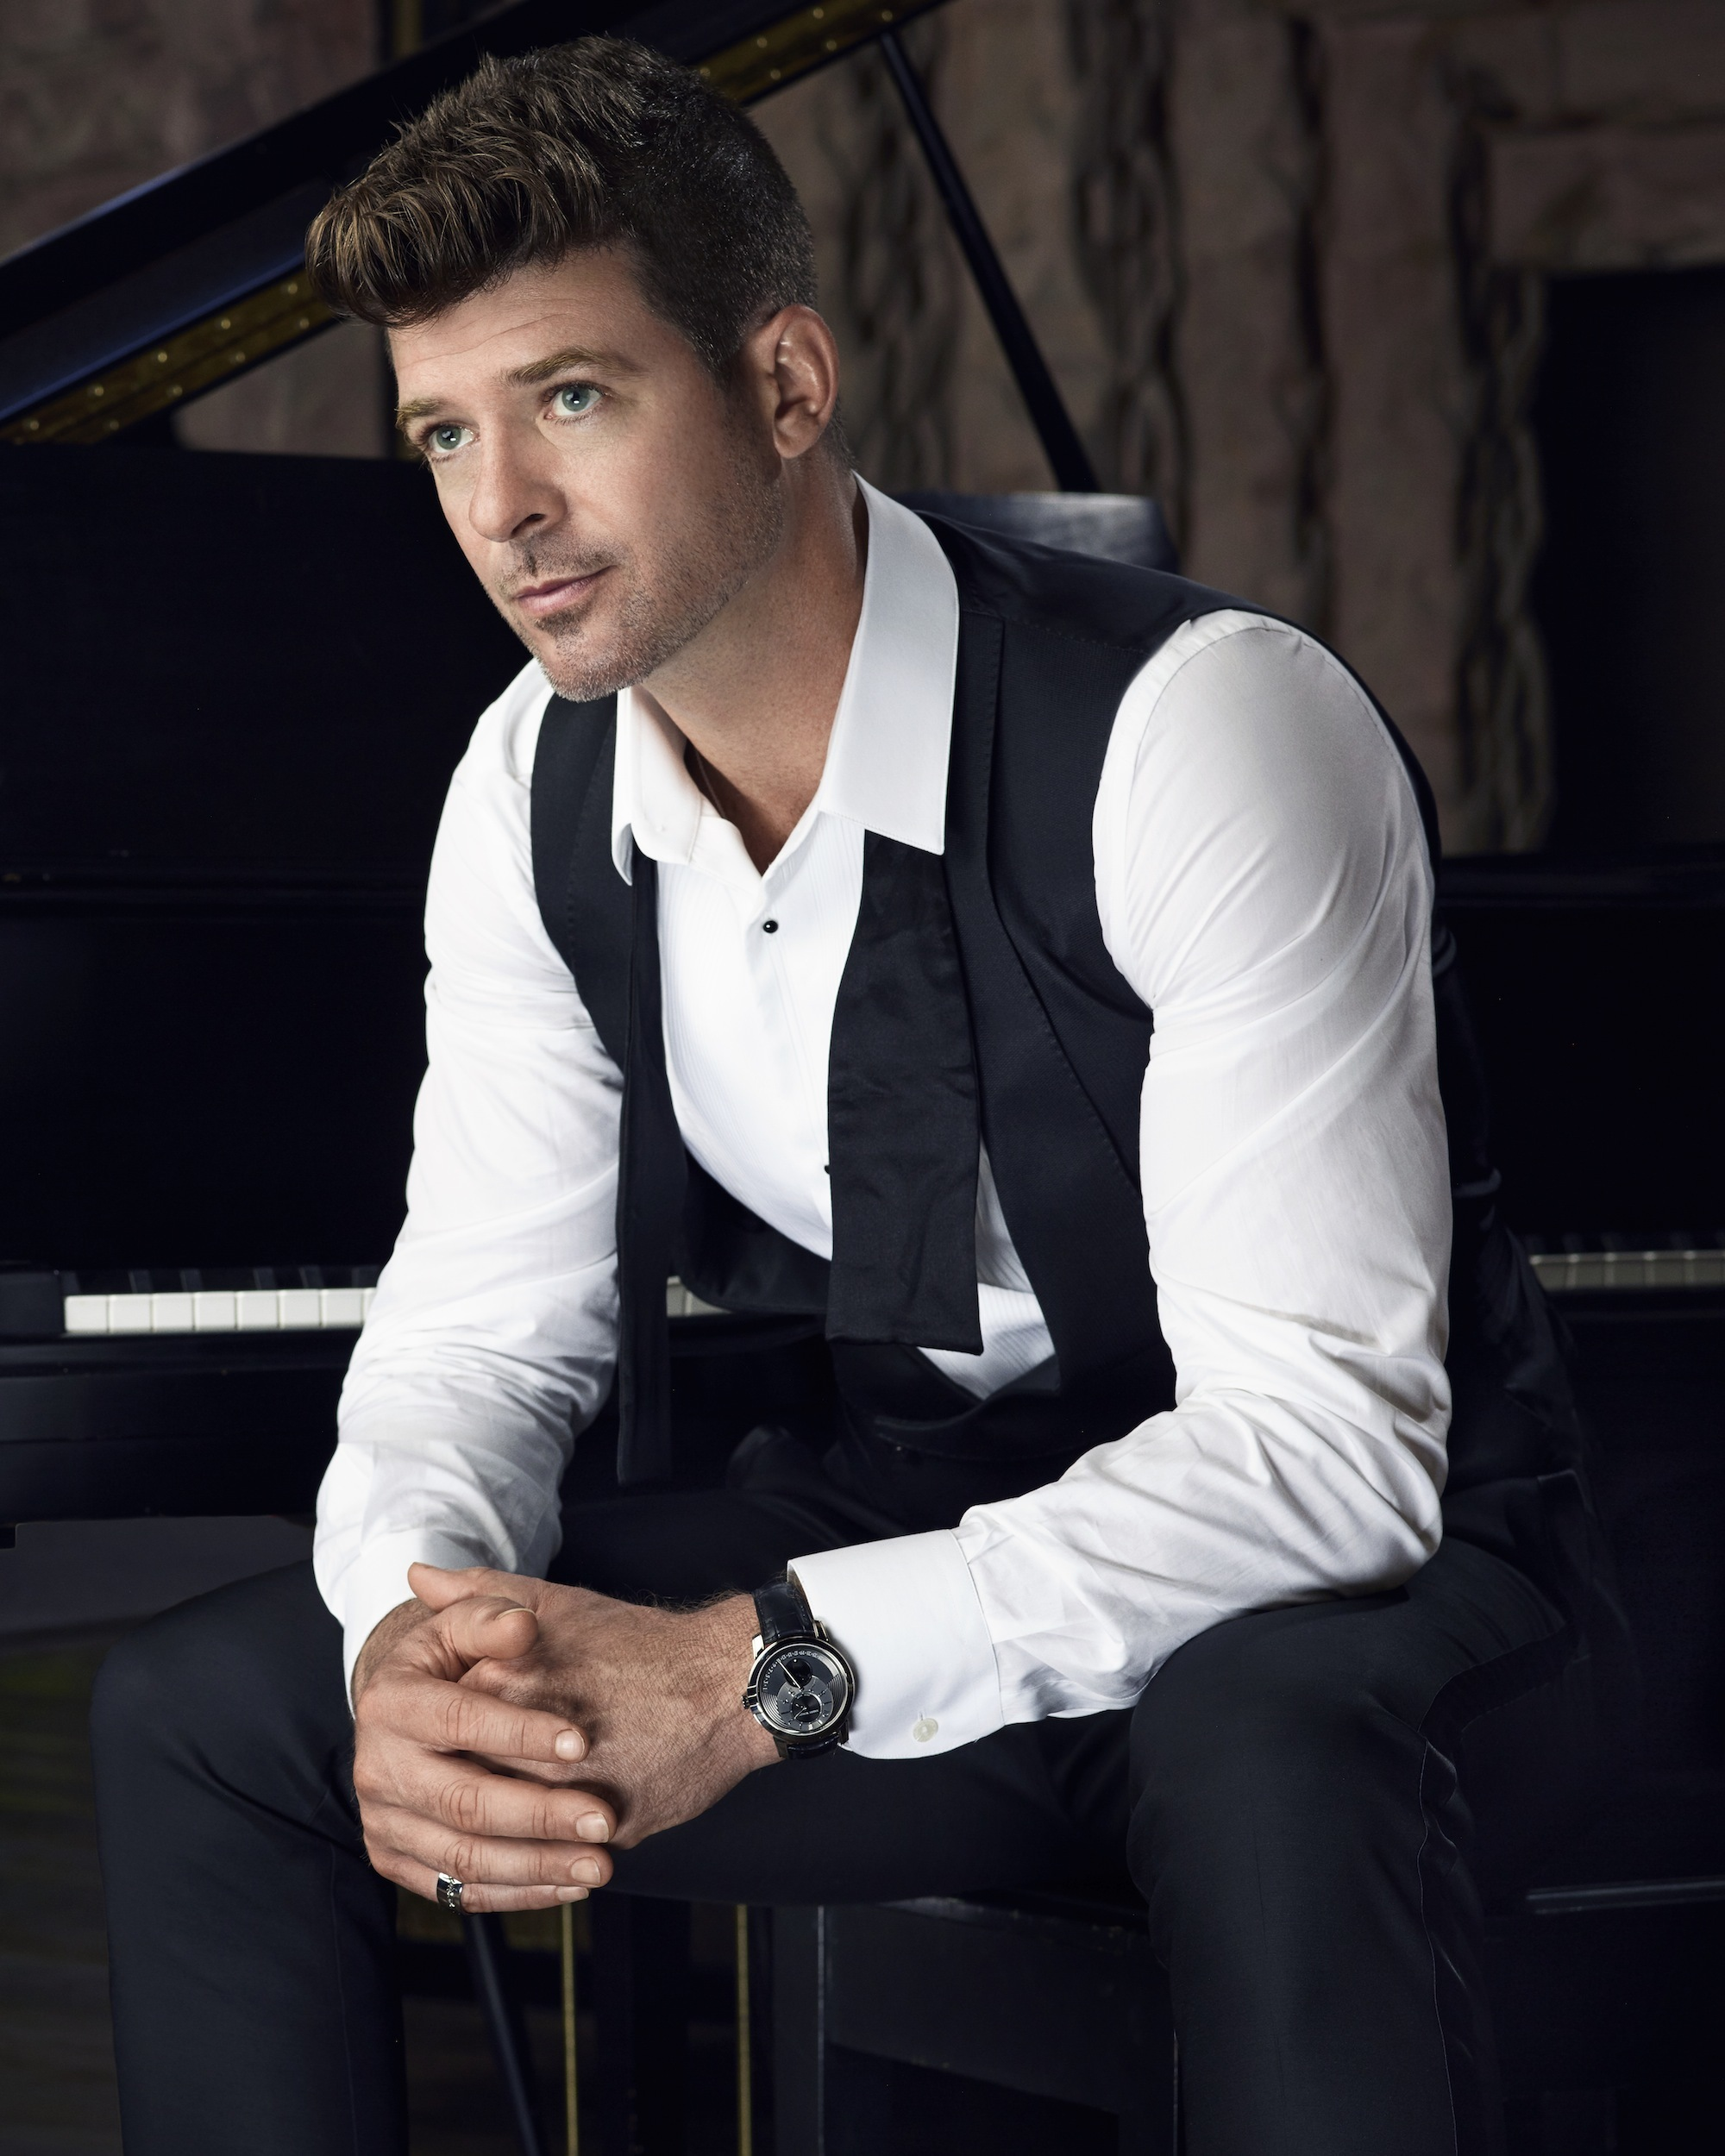 Charitybuzz meet robin thicke at an upcoming concert and take a lotpage nvjuhfo Image collections